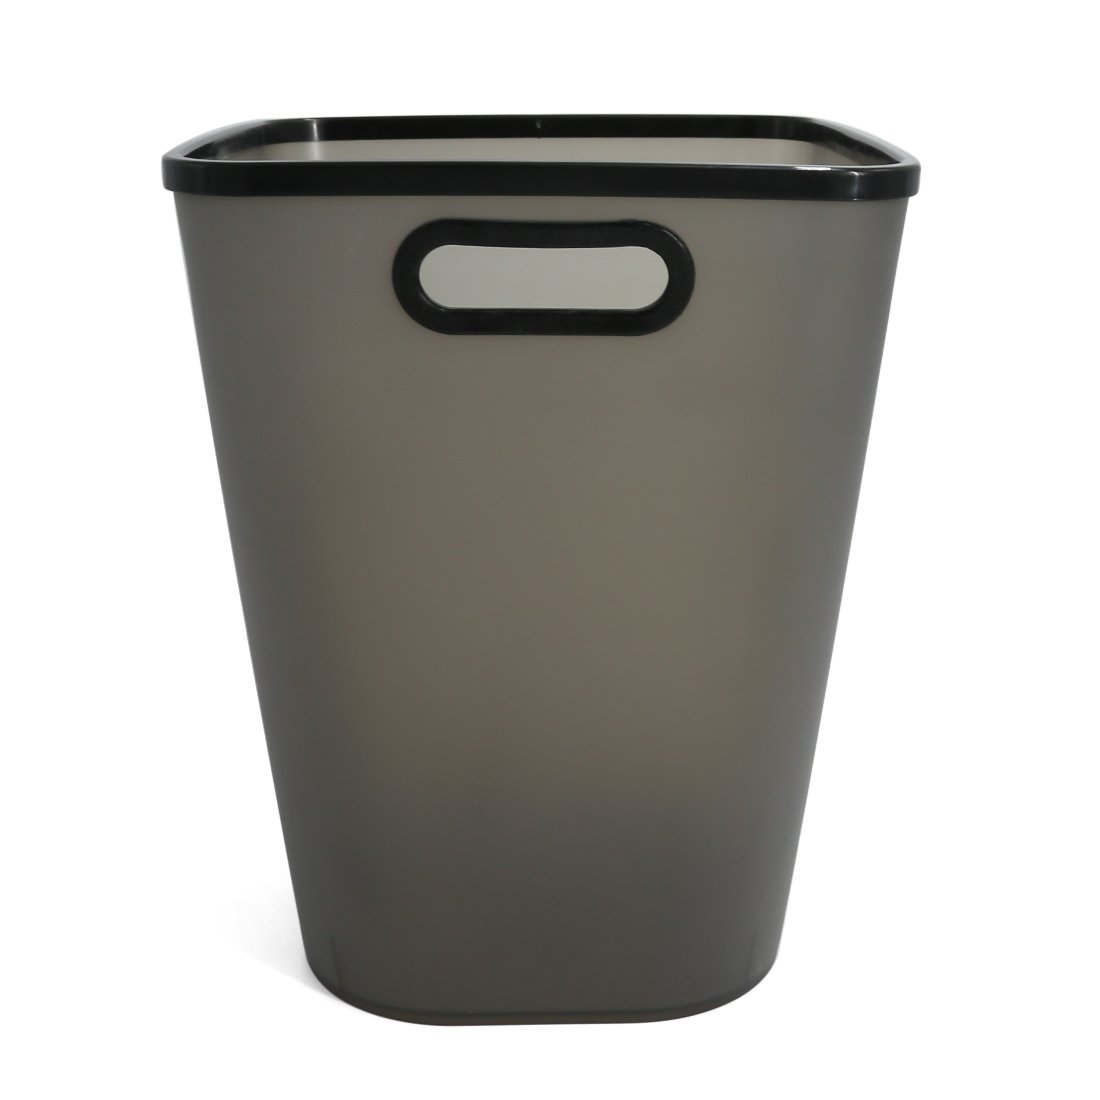 Paper Wastebasket Without Lid Fcoson Plastic Storage Garbage Can with Handle Large Frosted Trash Bin for Kitchen Bathroom Office Cabinet Black